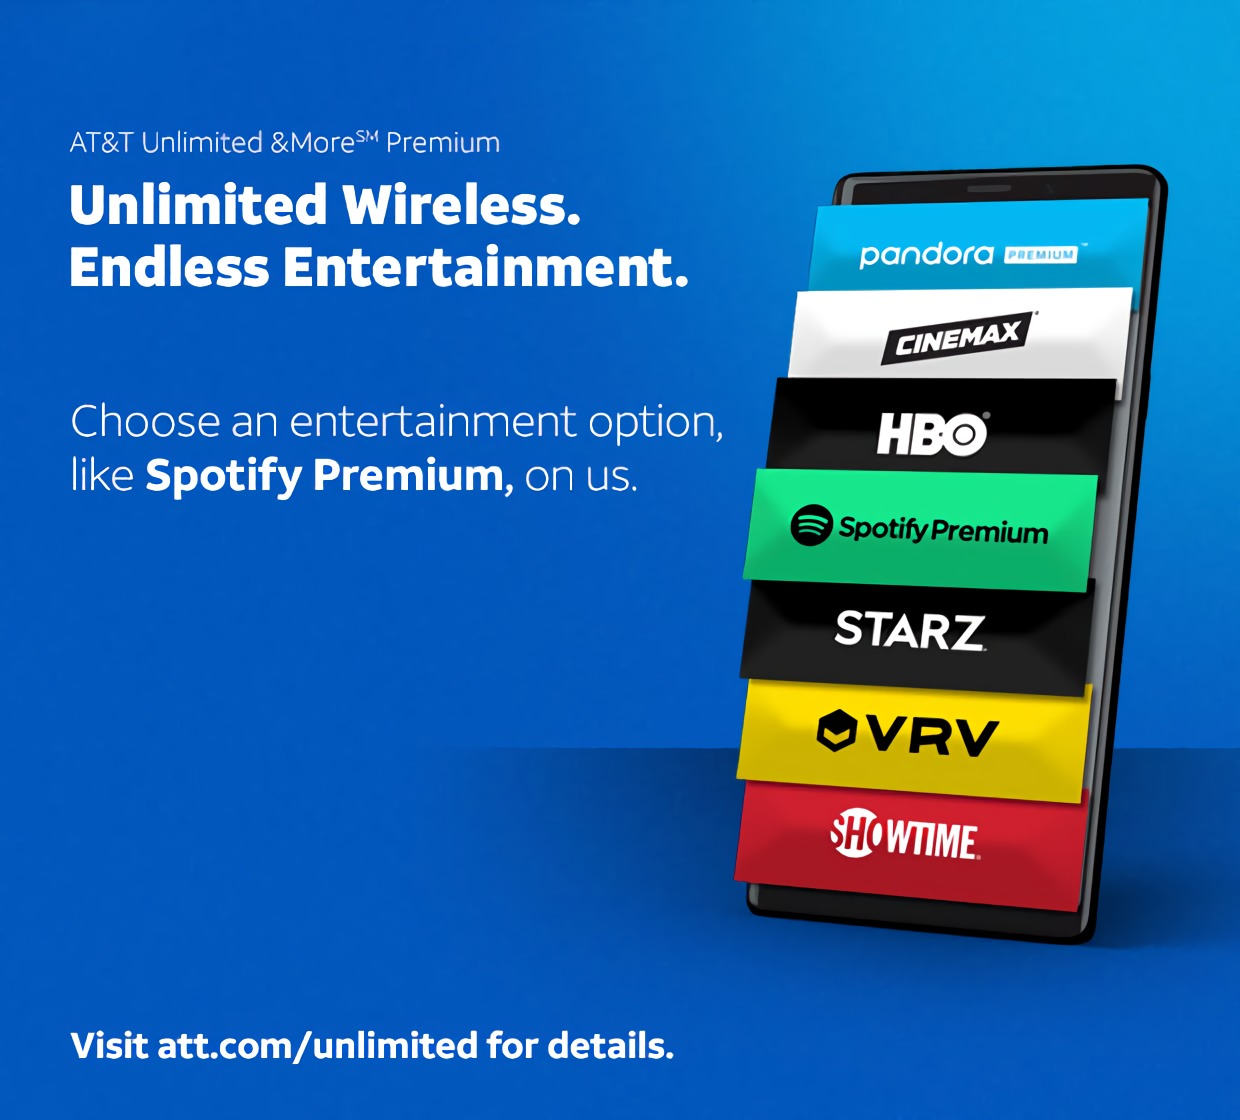 AT&T wireless subscribers can get Spotify Premium free of